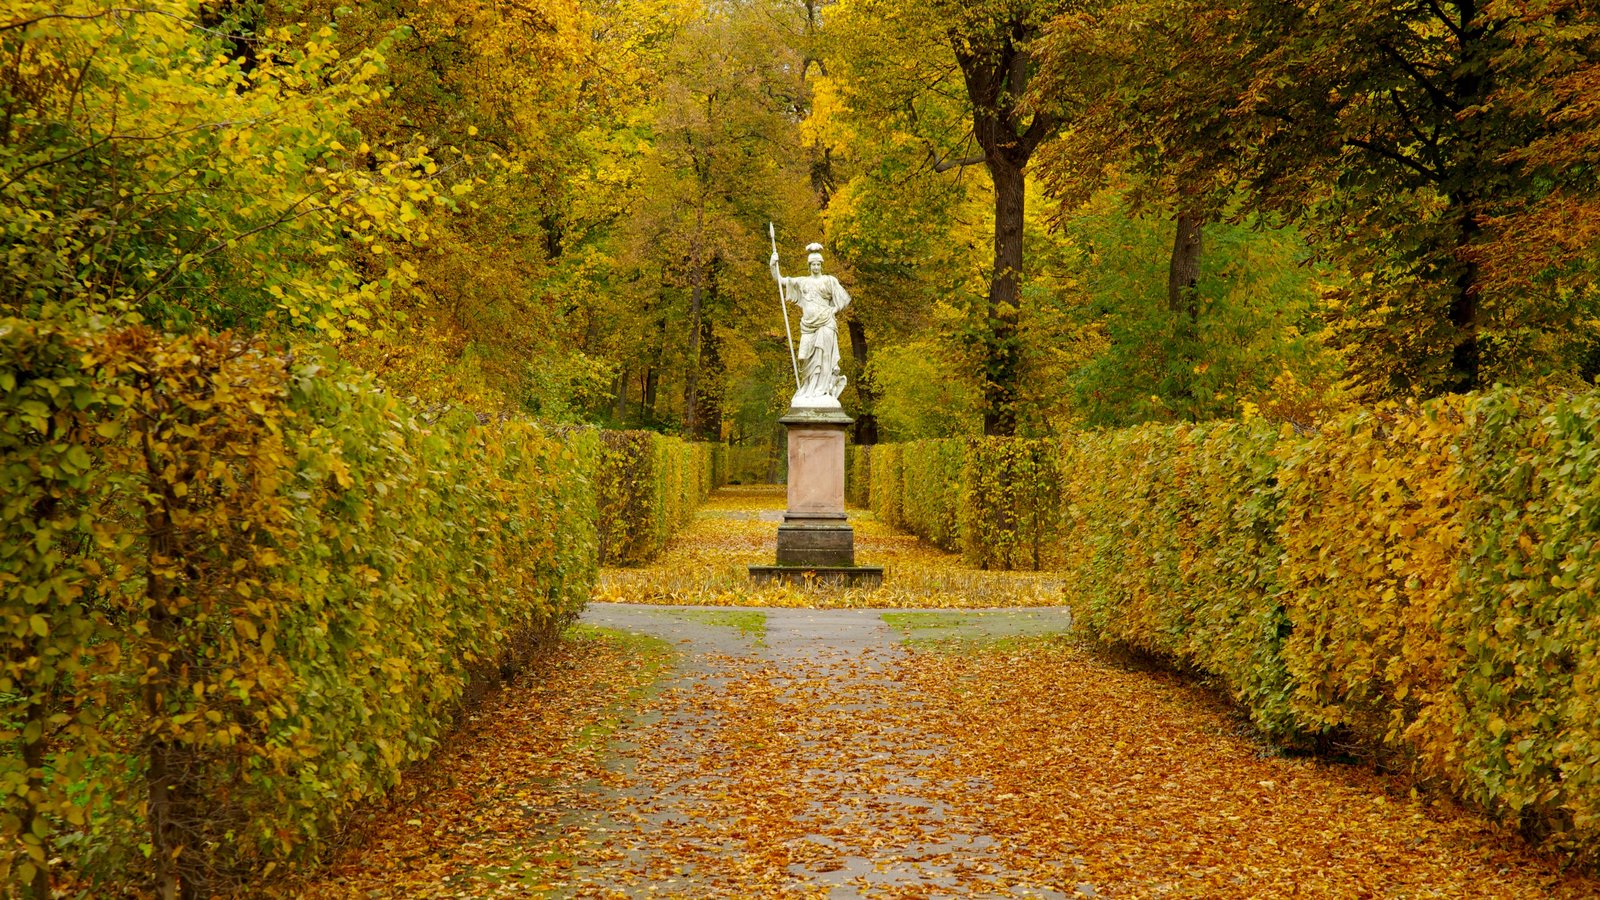 Schloss Charlottenburg featuring a statue or sculpture, landscape views and autumn leaves